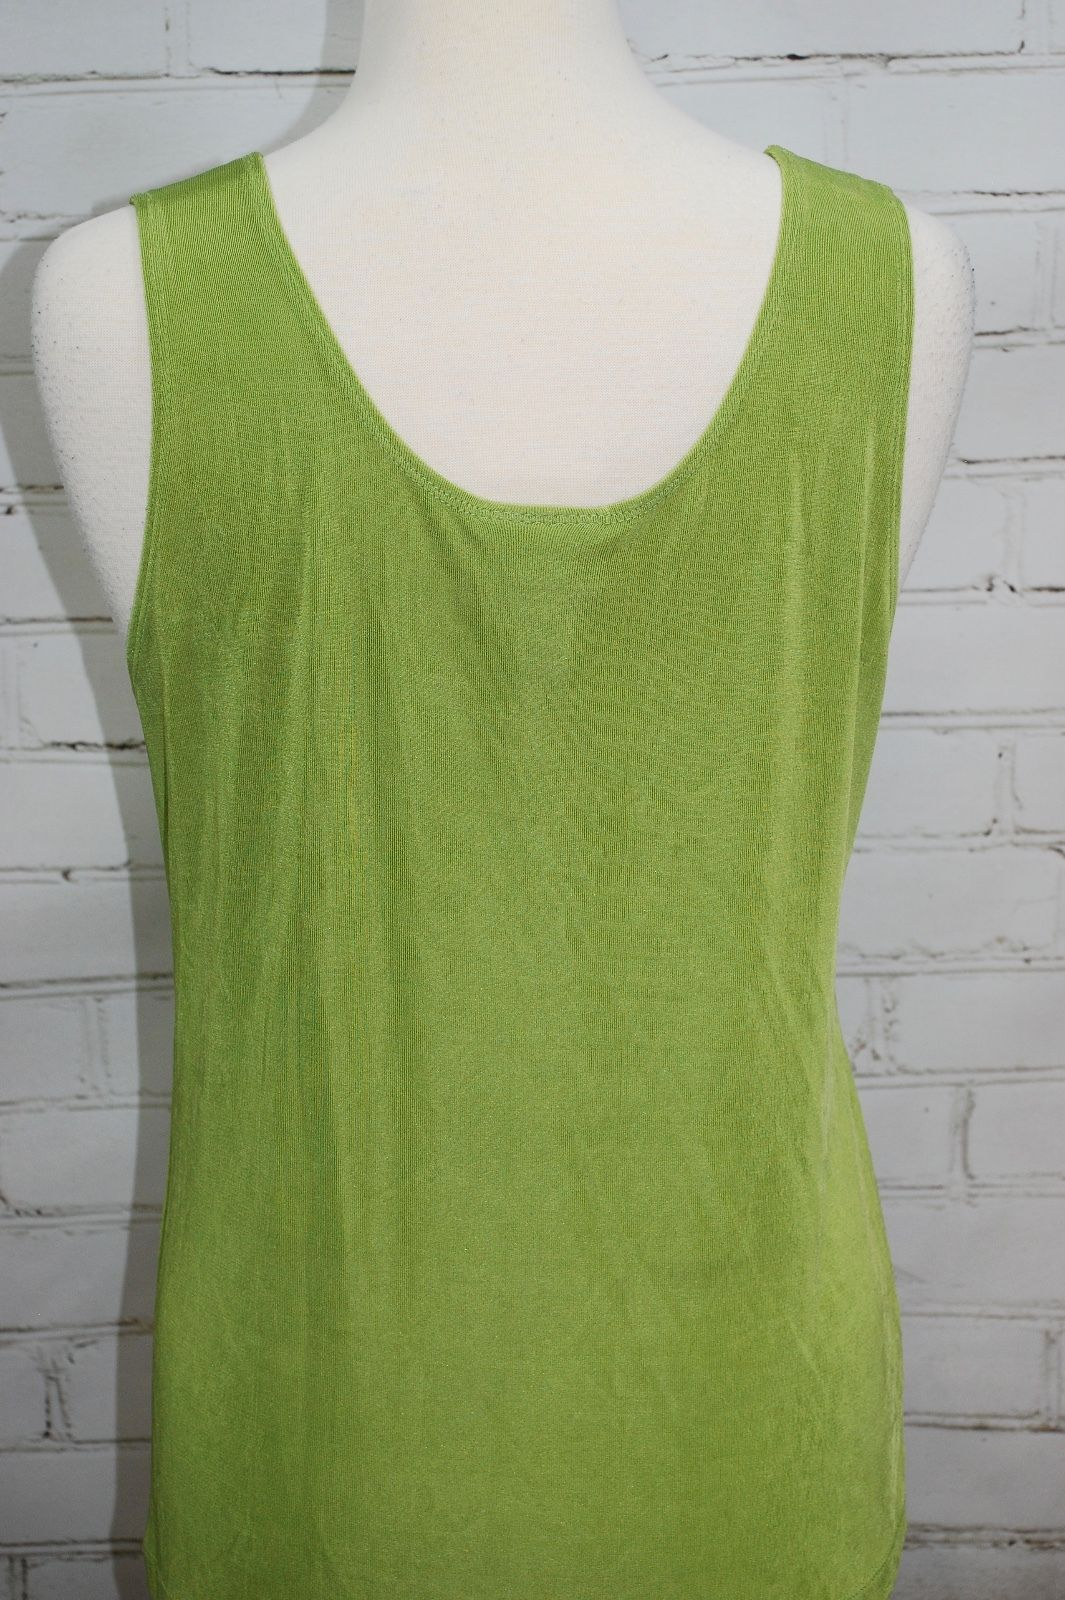 7957ab9f13a9e8 CHICO'S TRAVELERS Tank Top Shell Layering - Lime Green - Rib Knit Size  2/Large